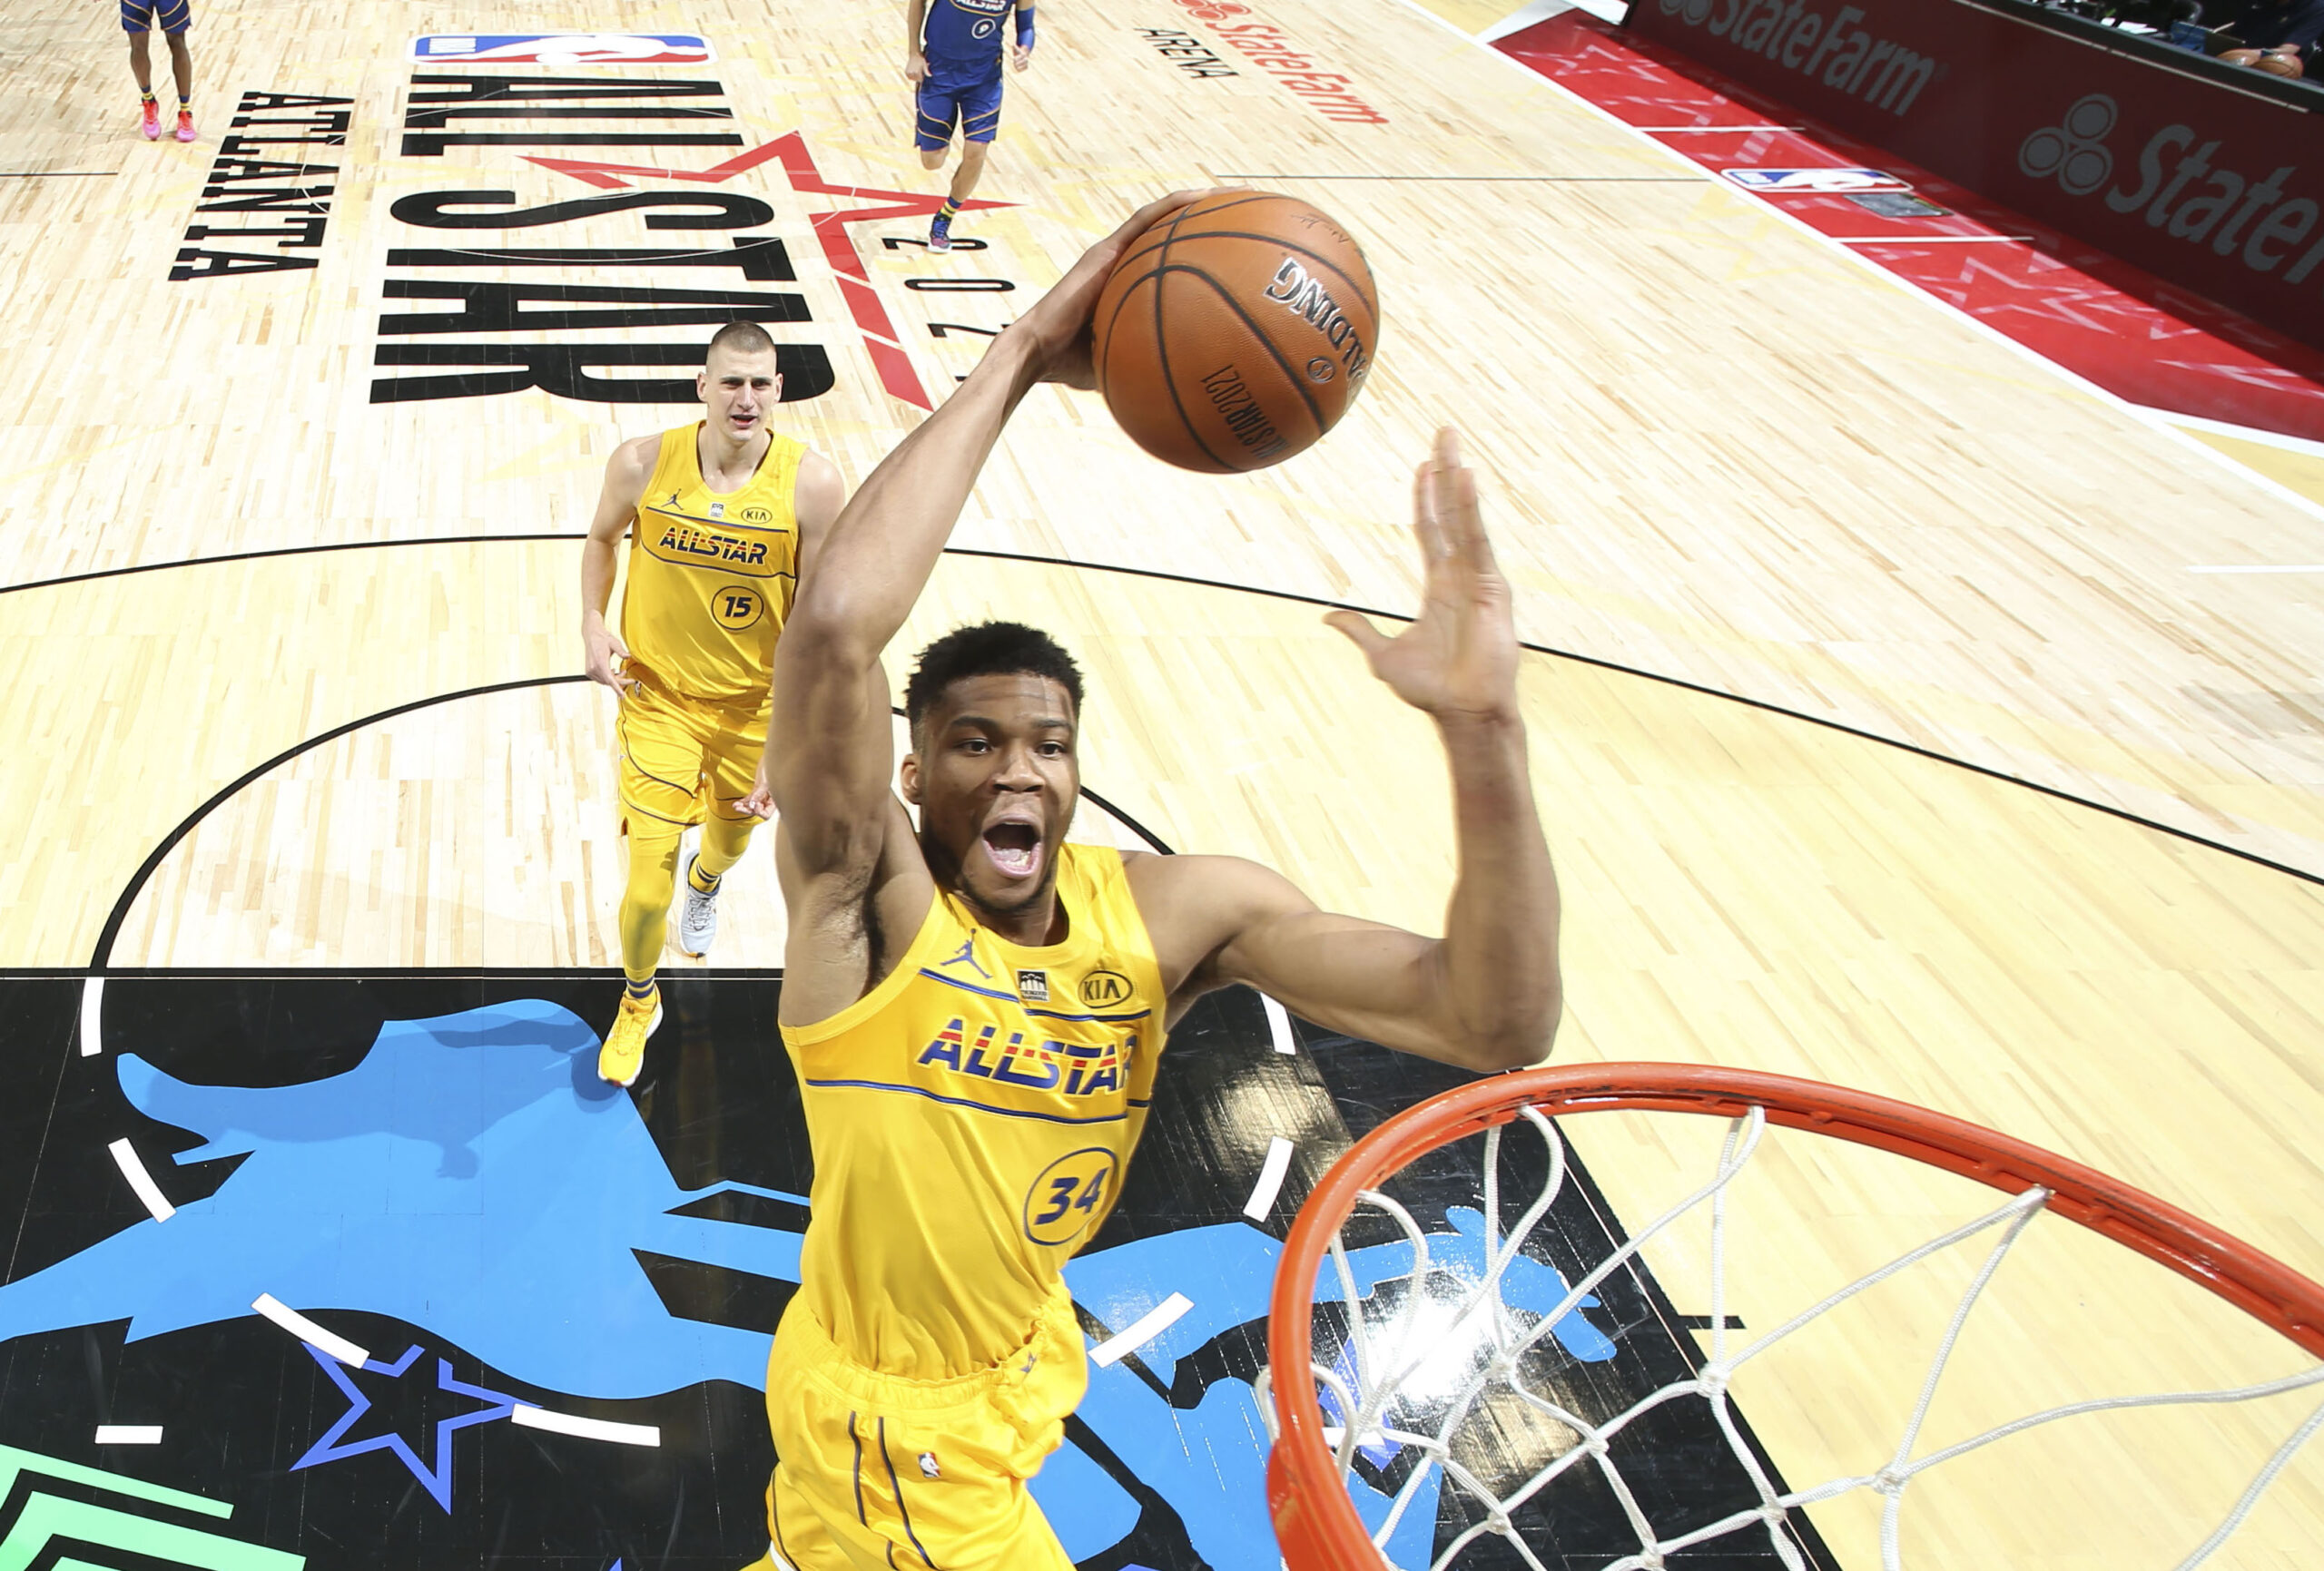 Giannis Antetokounmpo enjoys perfect shooting night, wins 2021 All-Star MVP award